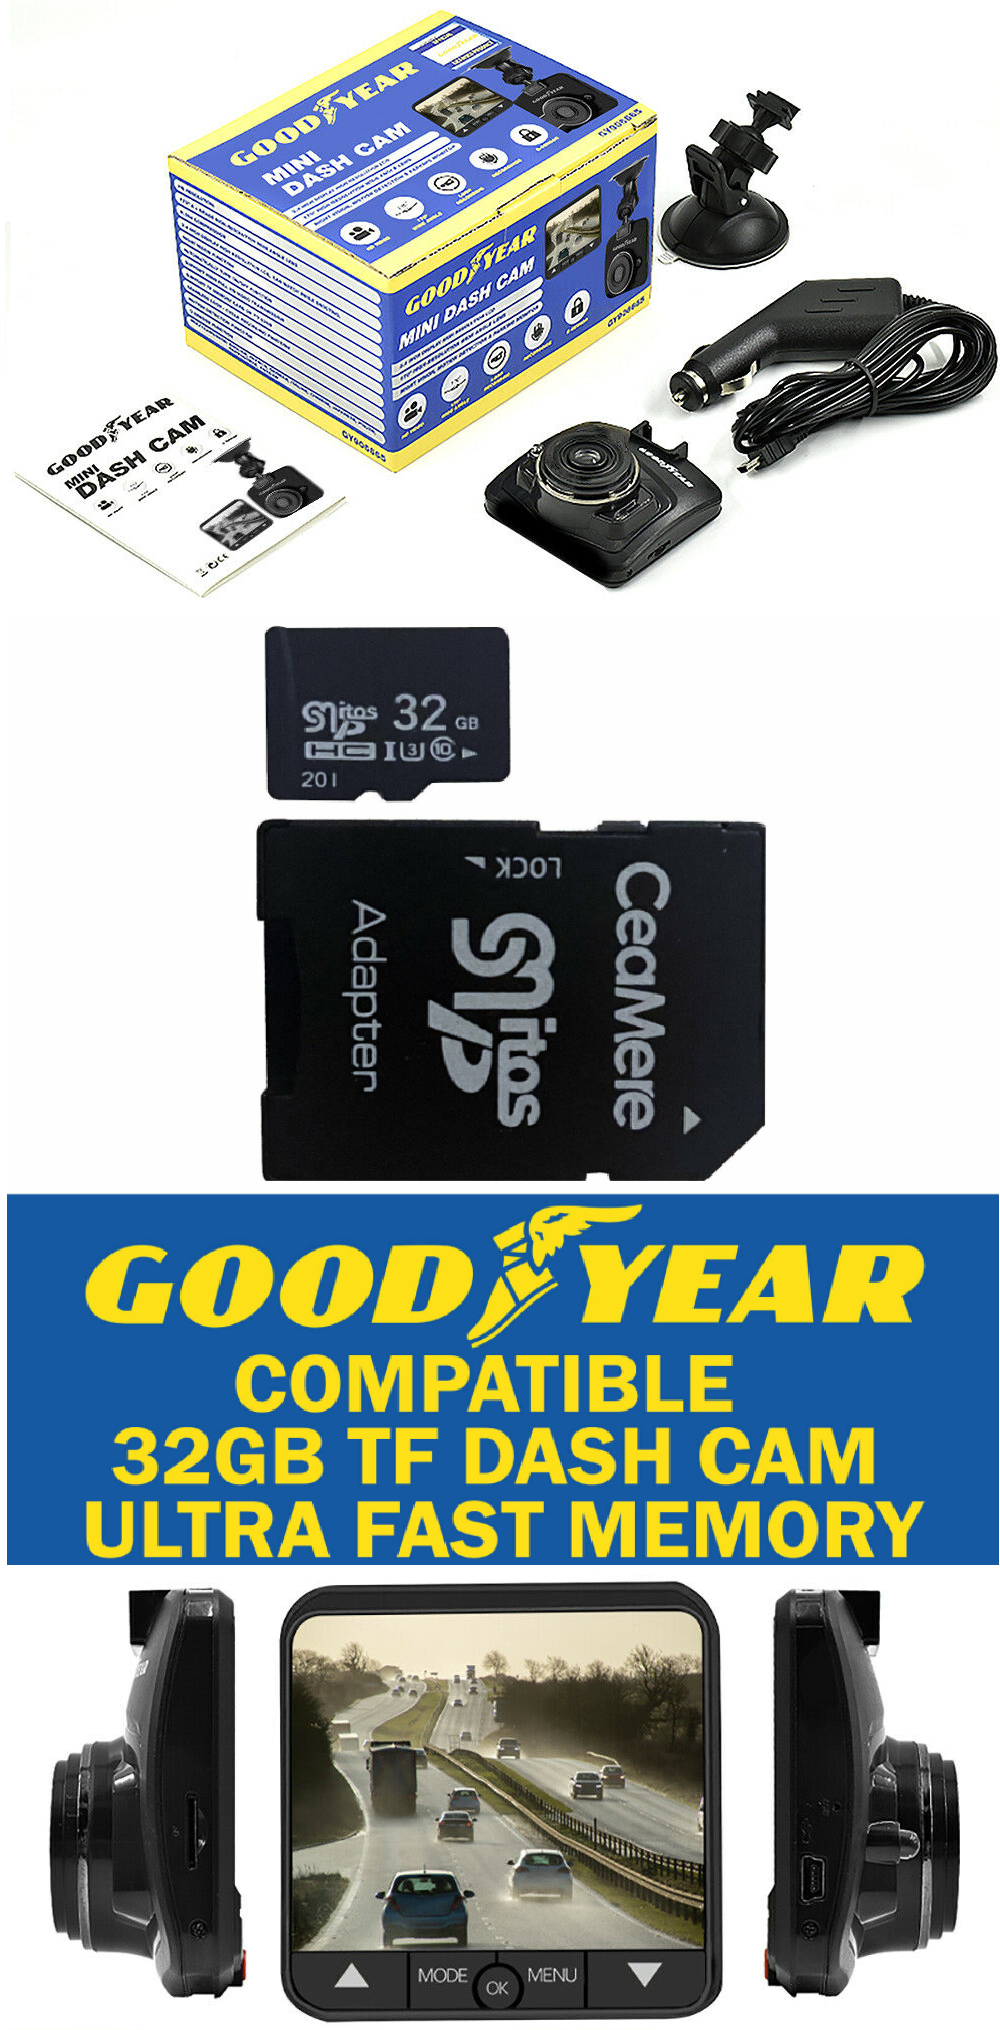 Goodyear Mini HD Dash Cam with 32GB Memory Card Settle insurance disputes easily with this Goodyear Mini HD Dash Camera with 2.4 inch display Includes a Goodyear Compatible 32GB memory card videos video Sensors Sensor Recorders Recorder Motion Mini In-Car HD dvrs DVR Detection dashcams dashcam dashboard cars caravans caravan car park camera's Camera cam's Cam